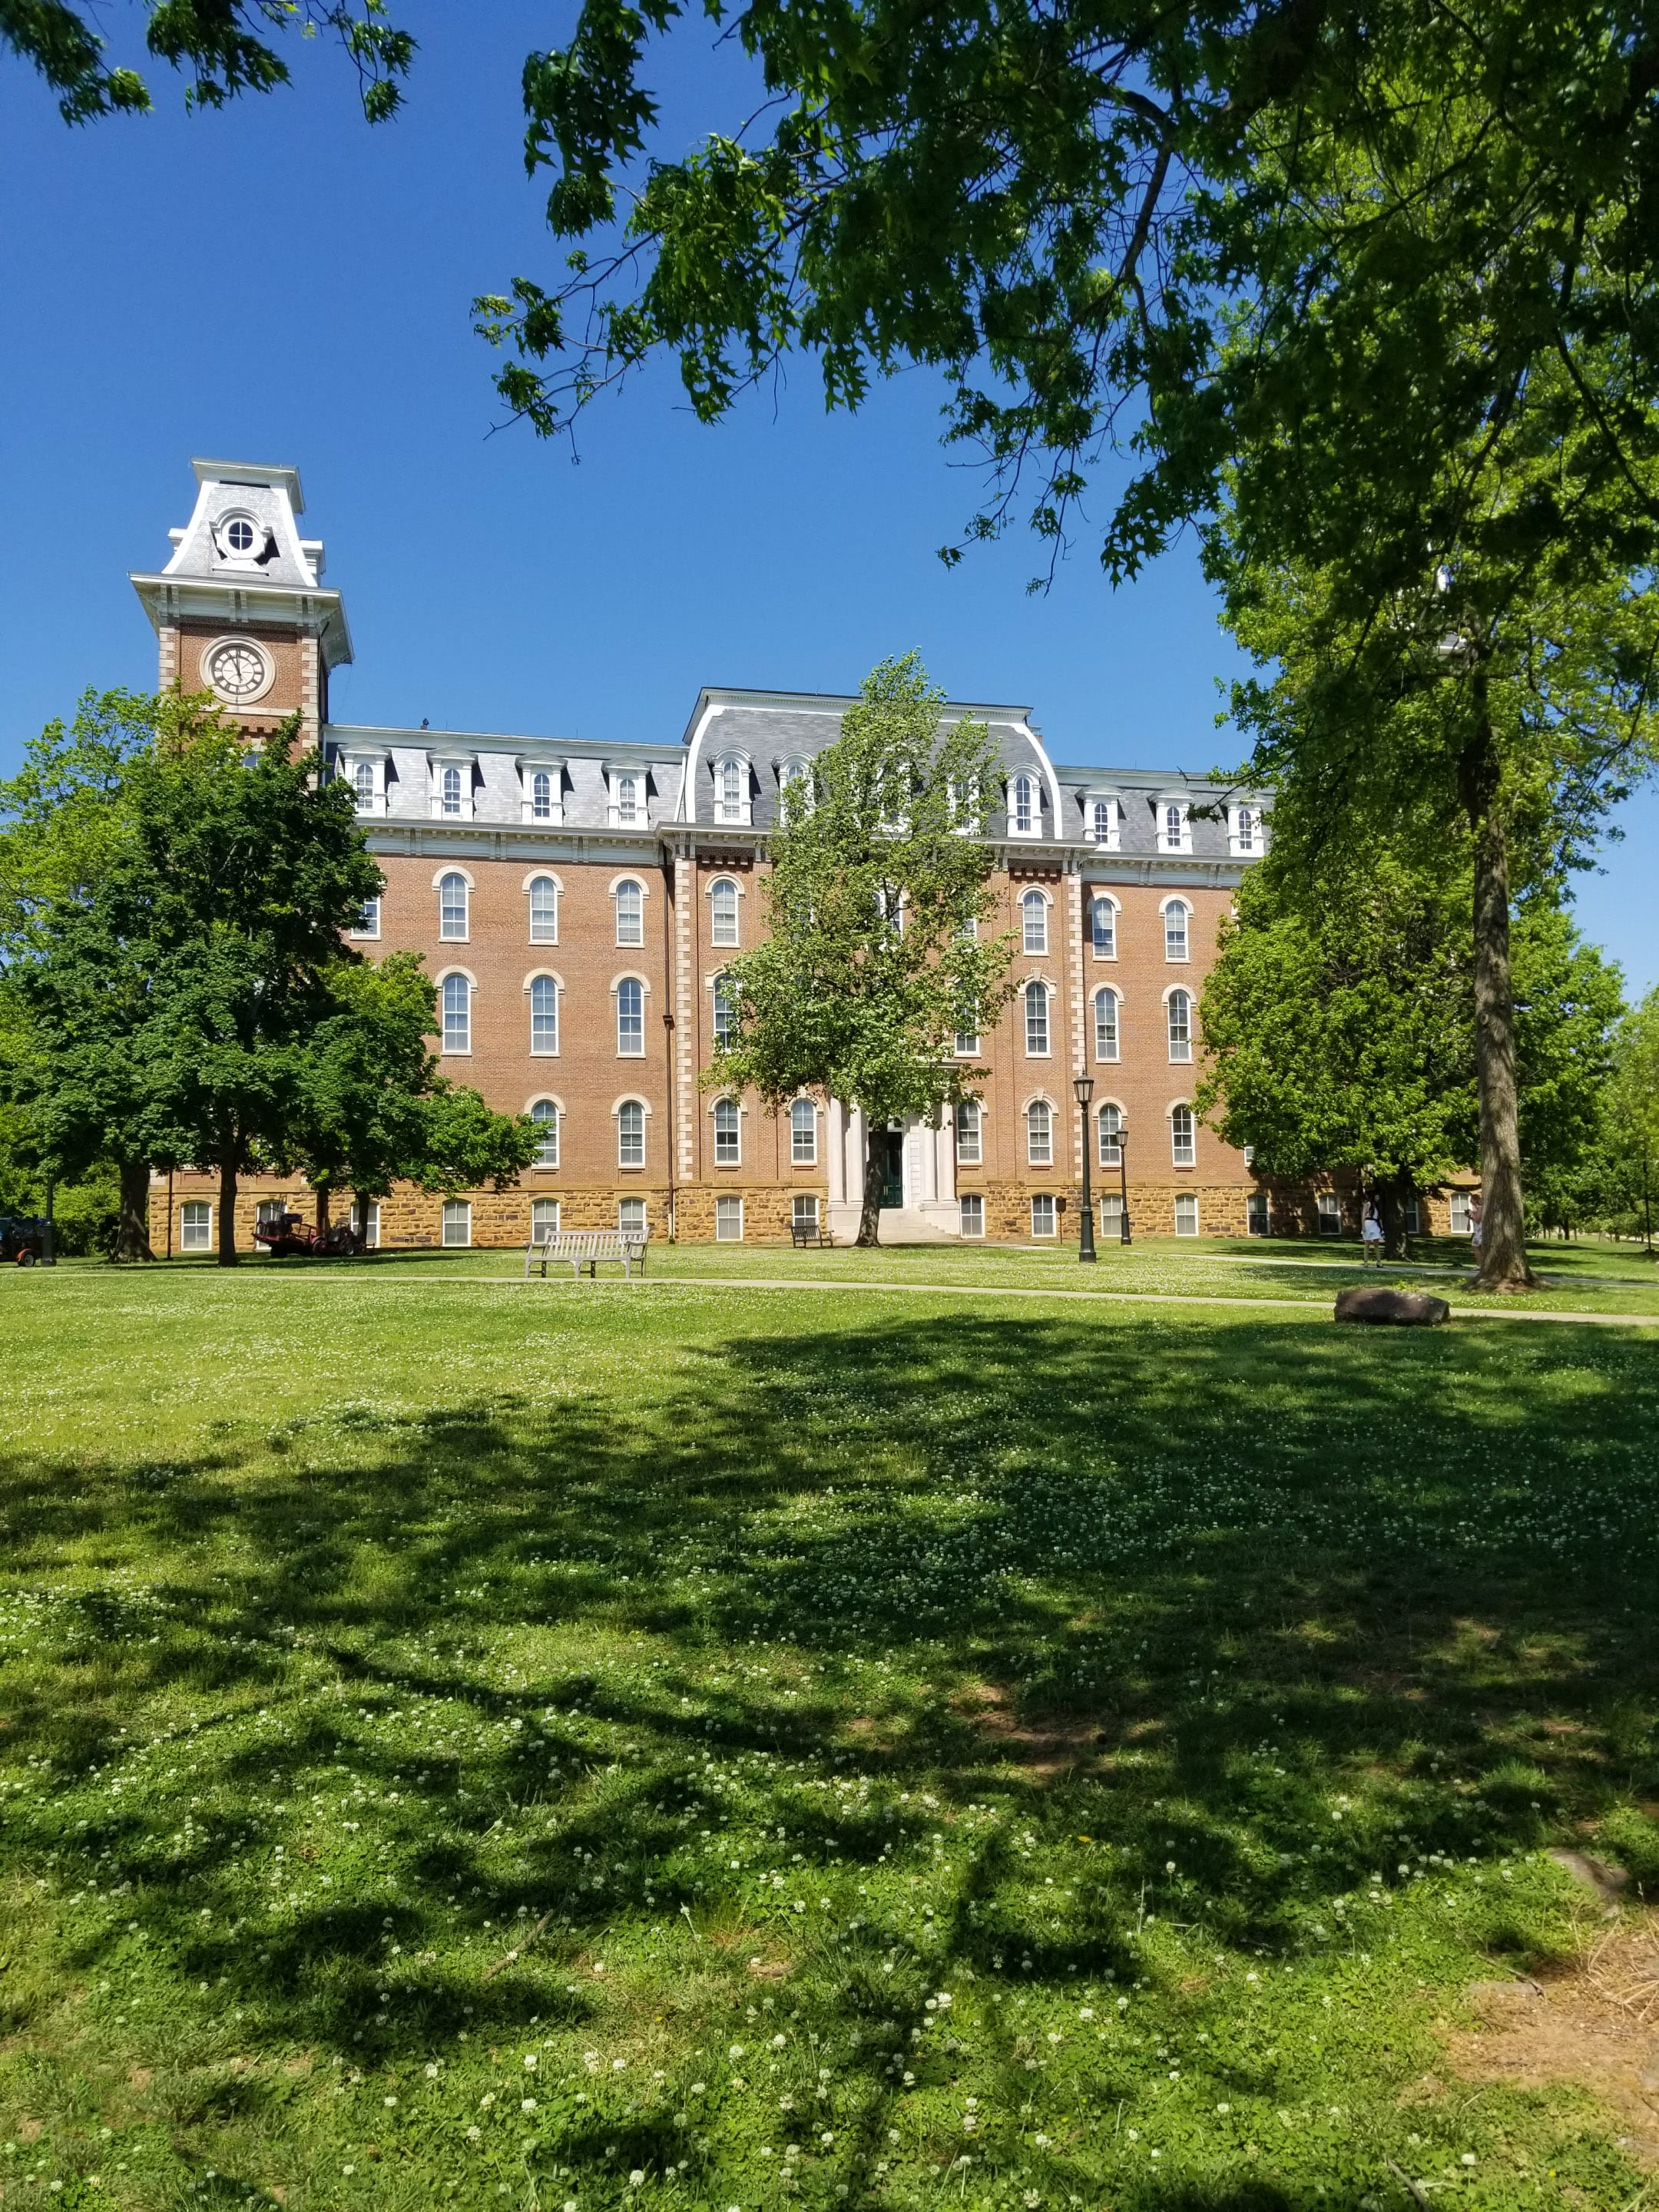 A view of Old Main from the East lawn